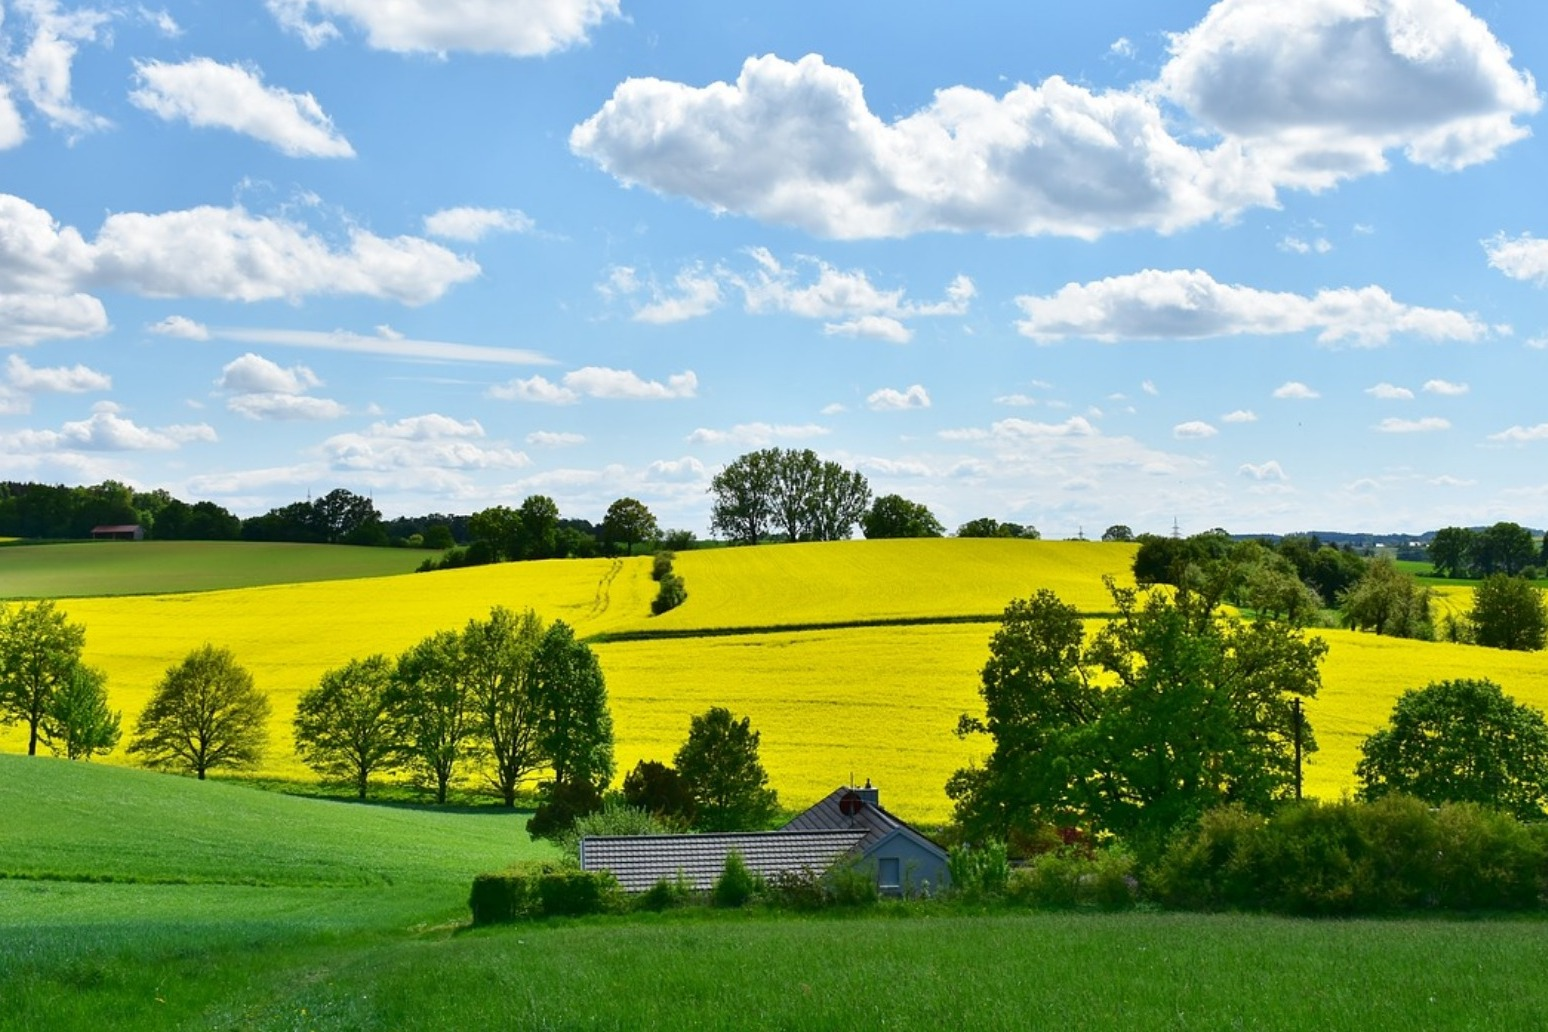 People in rural areas to be left behind post Brexit